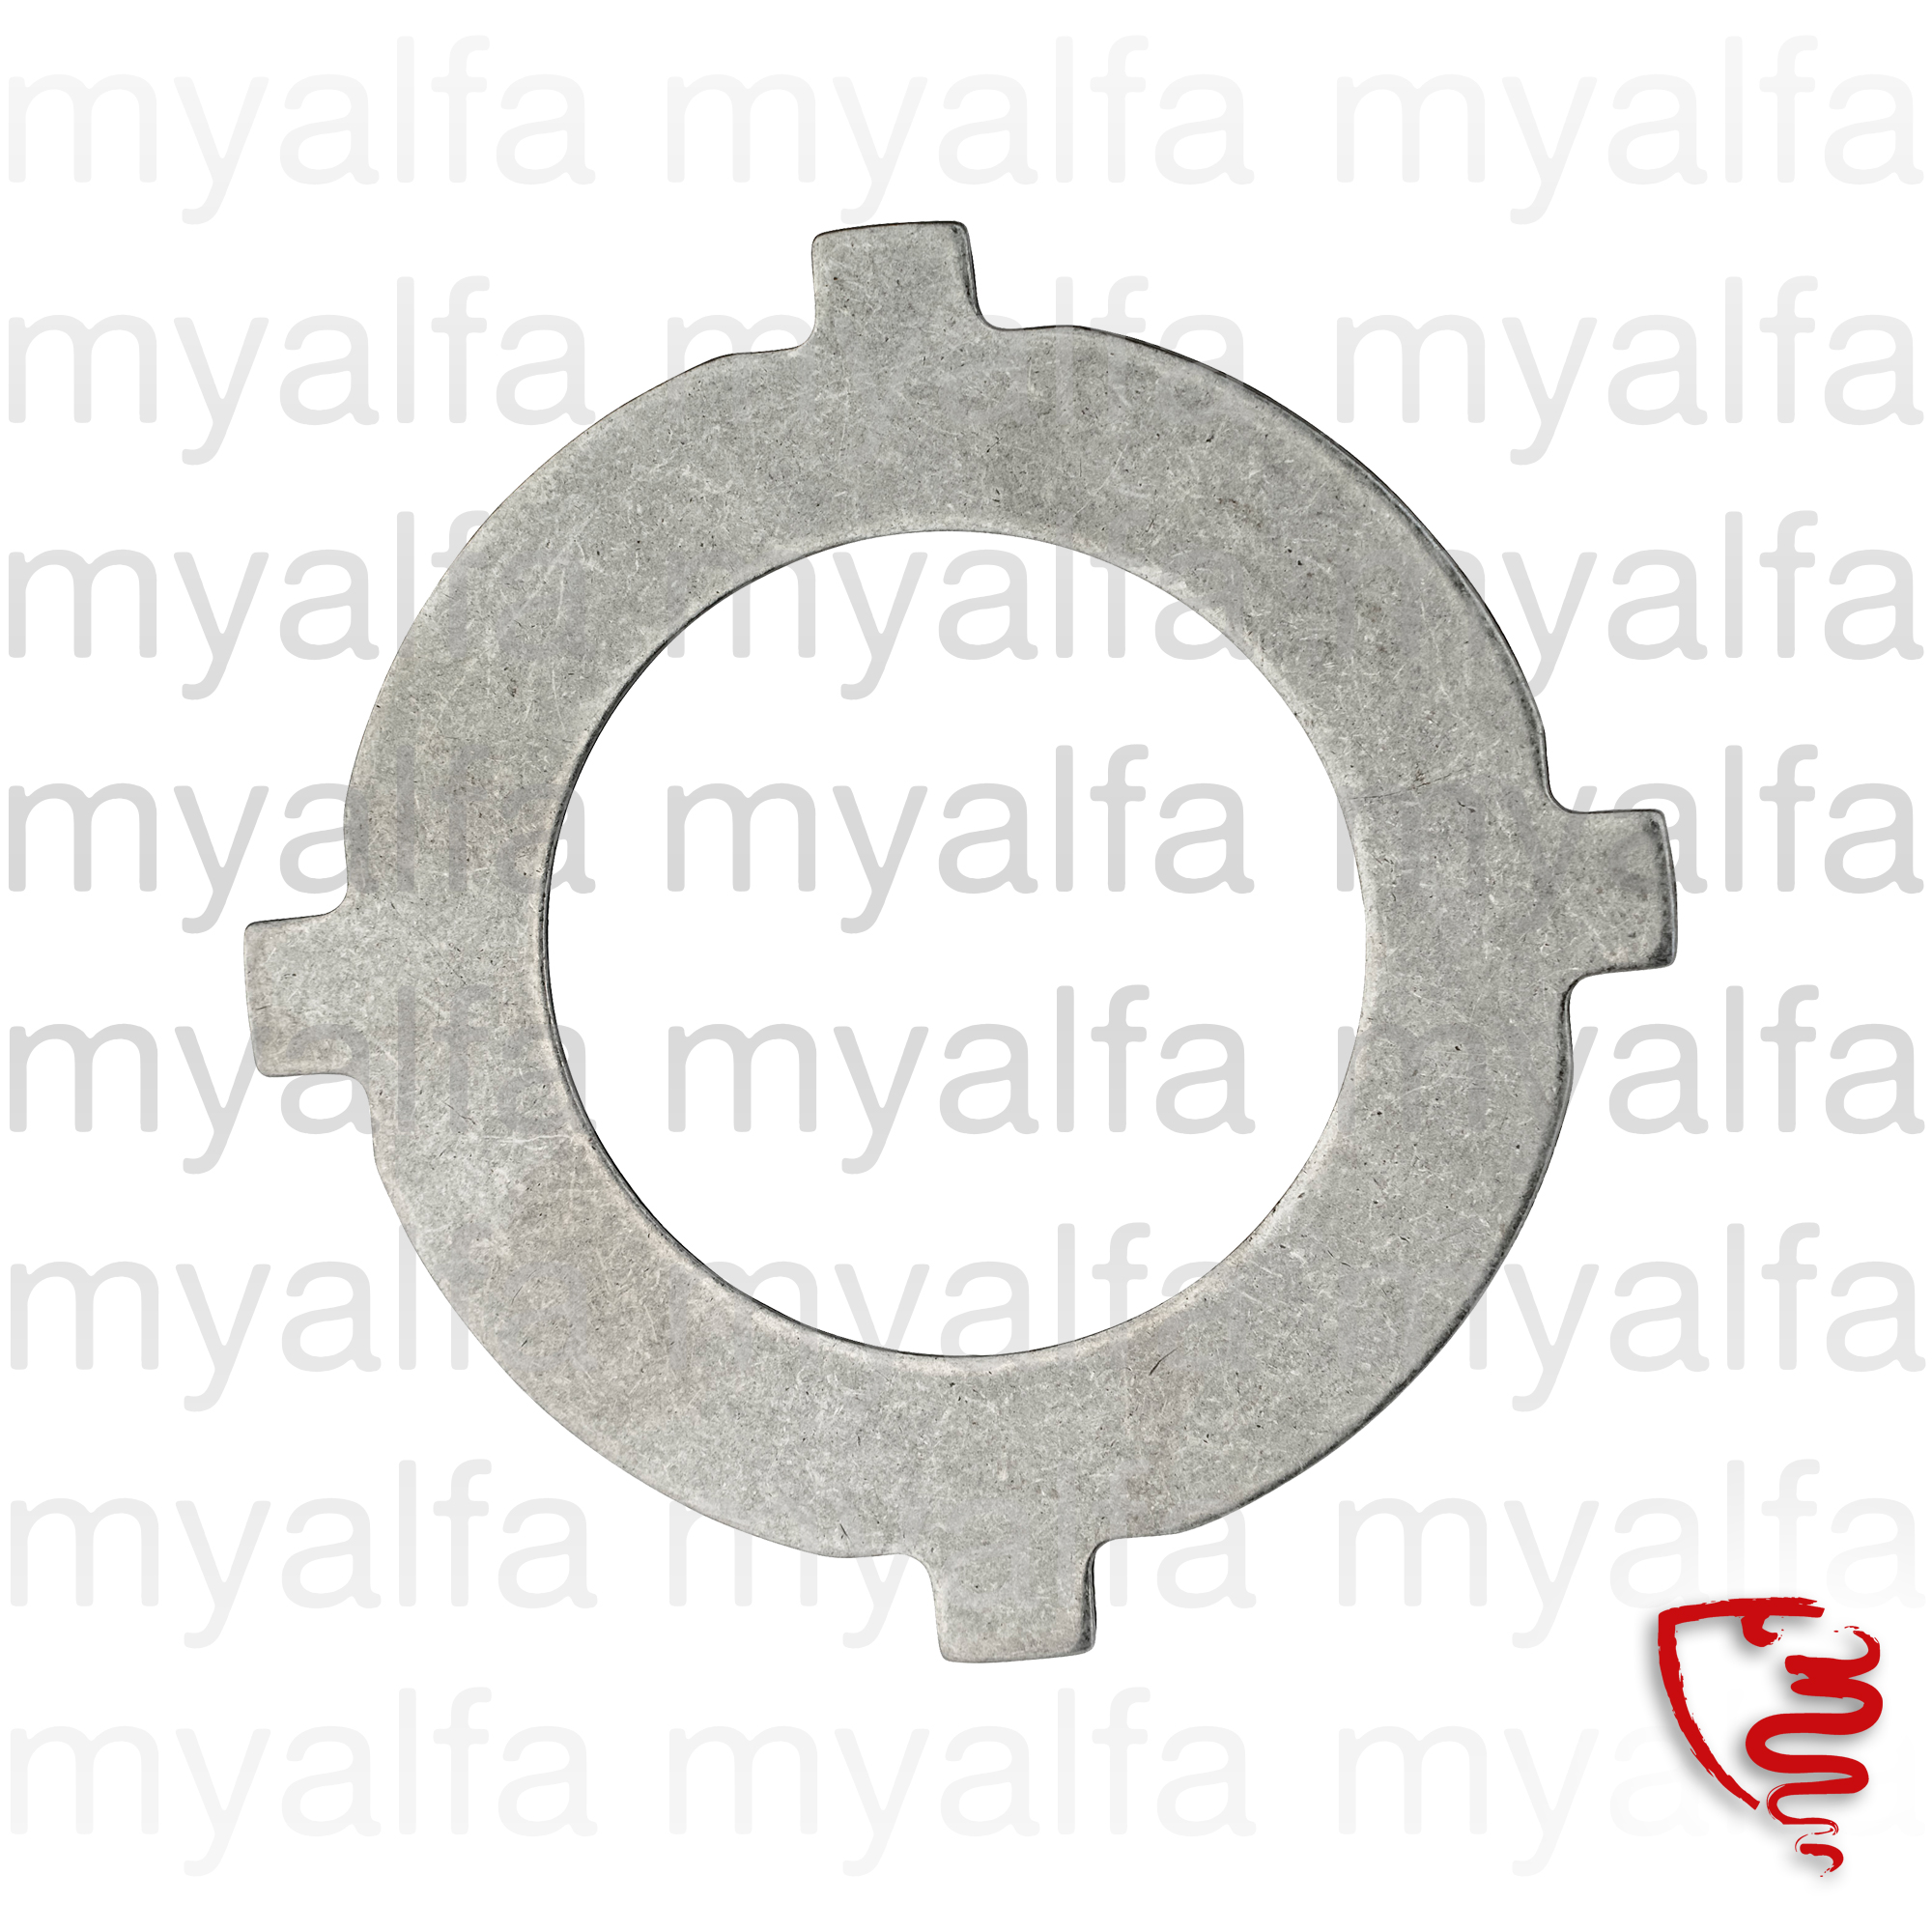 Ring 1.9mm axial clearance limited slip dif for 105/115, Differential, Differential/Limited Slip